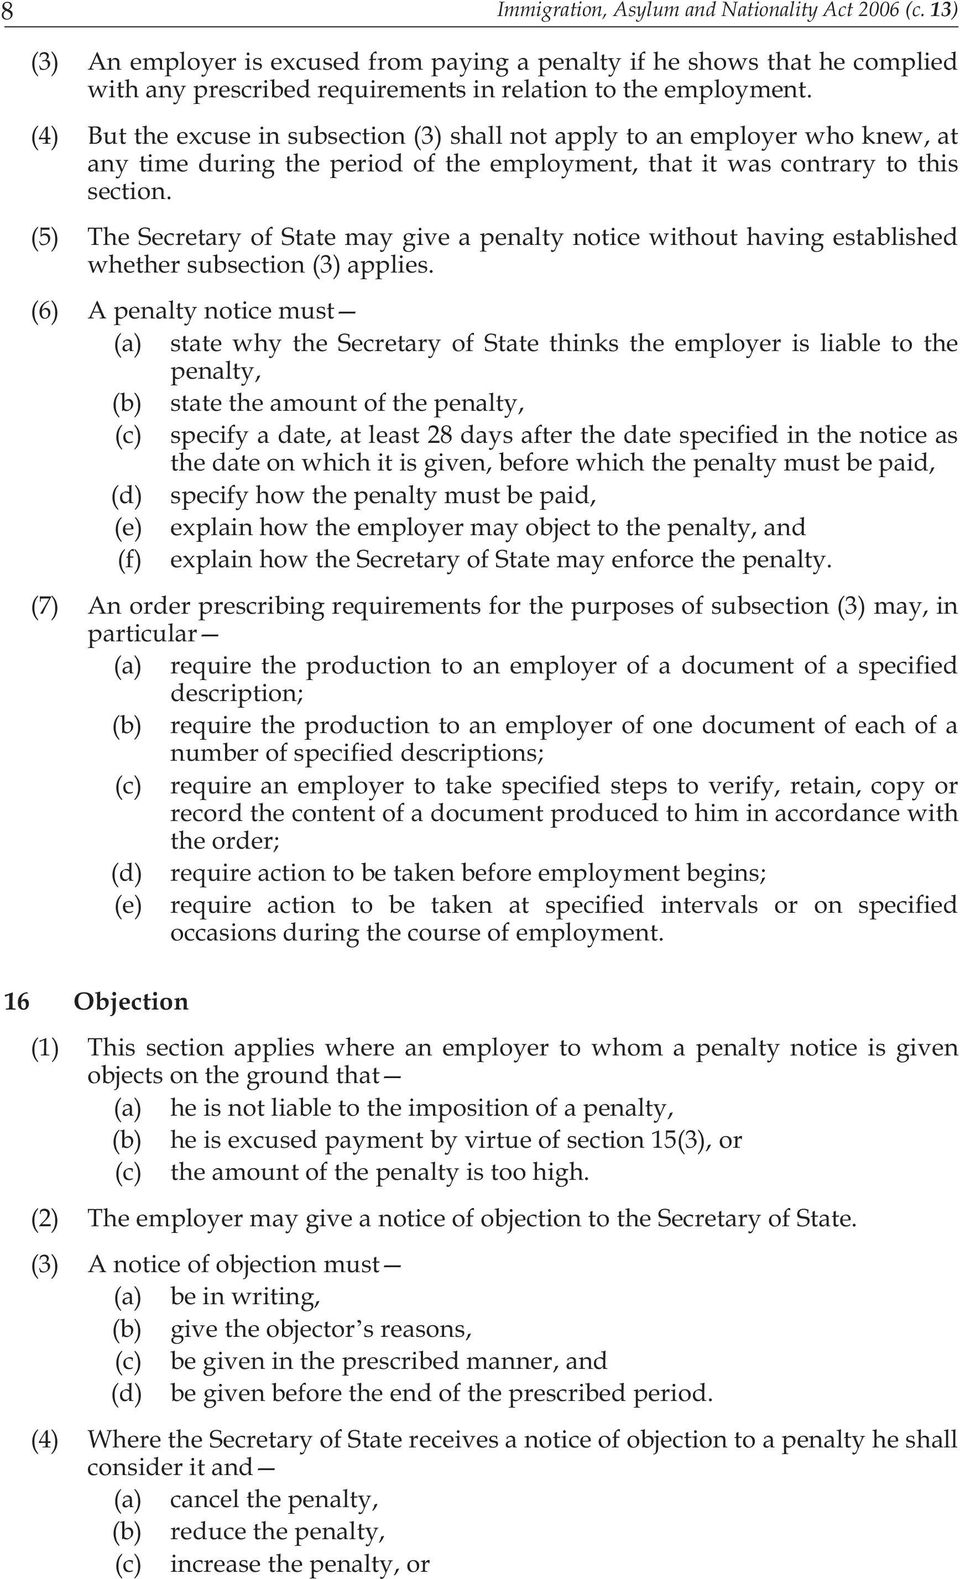 (5) The Secretary of State may give a penalty notice without having established whether subsection (3) applies.